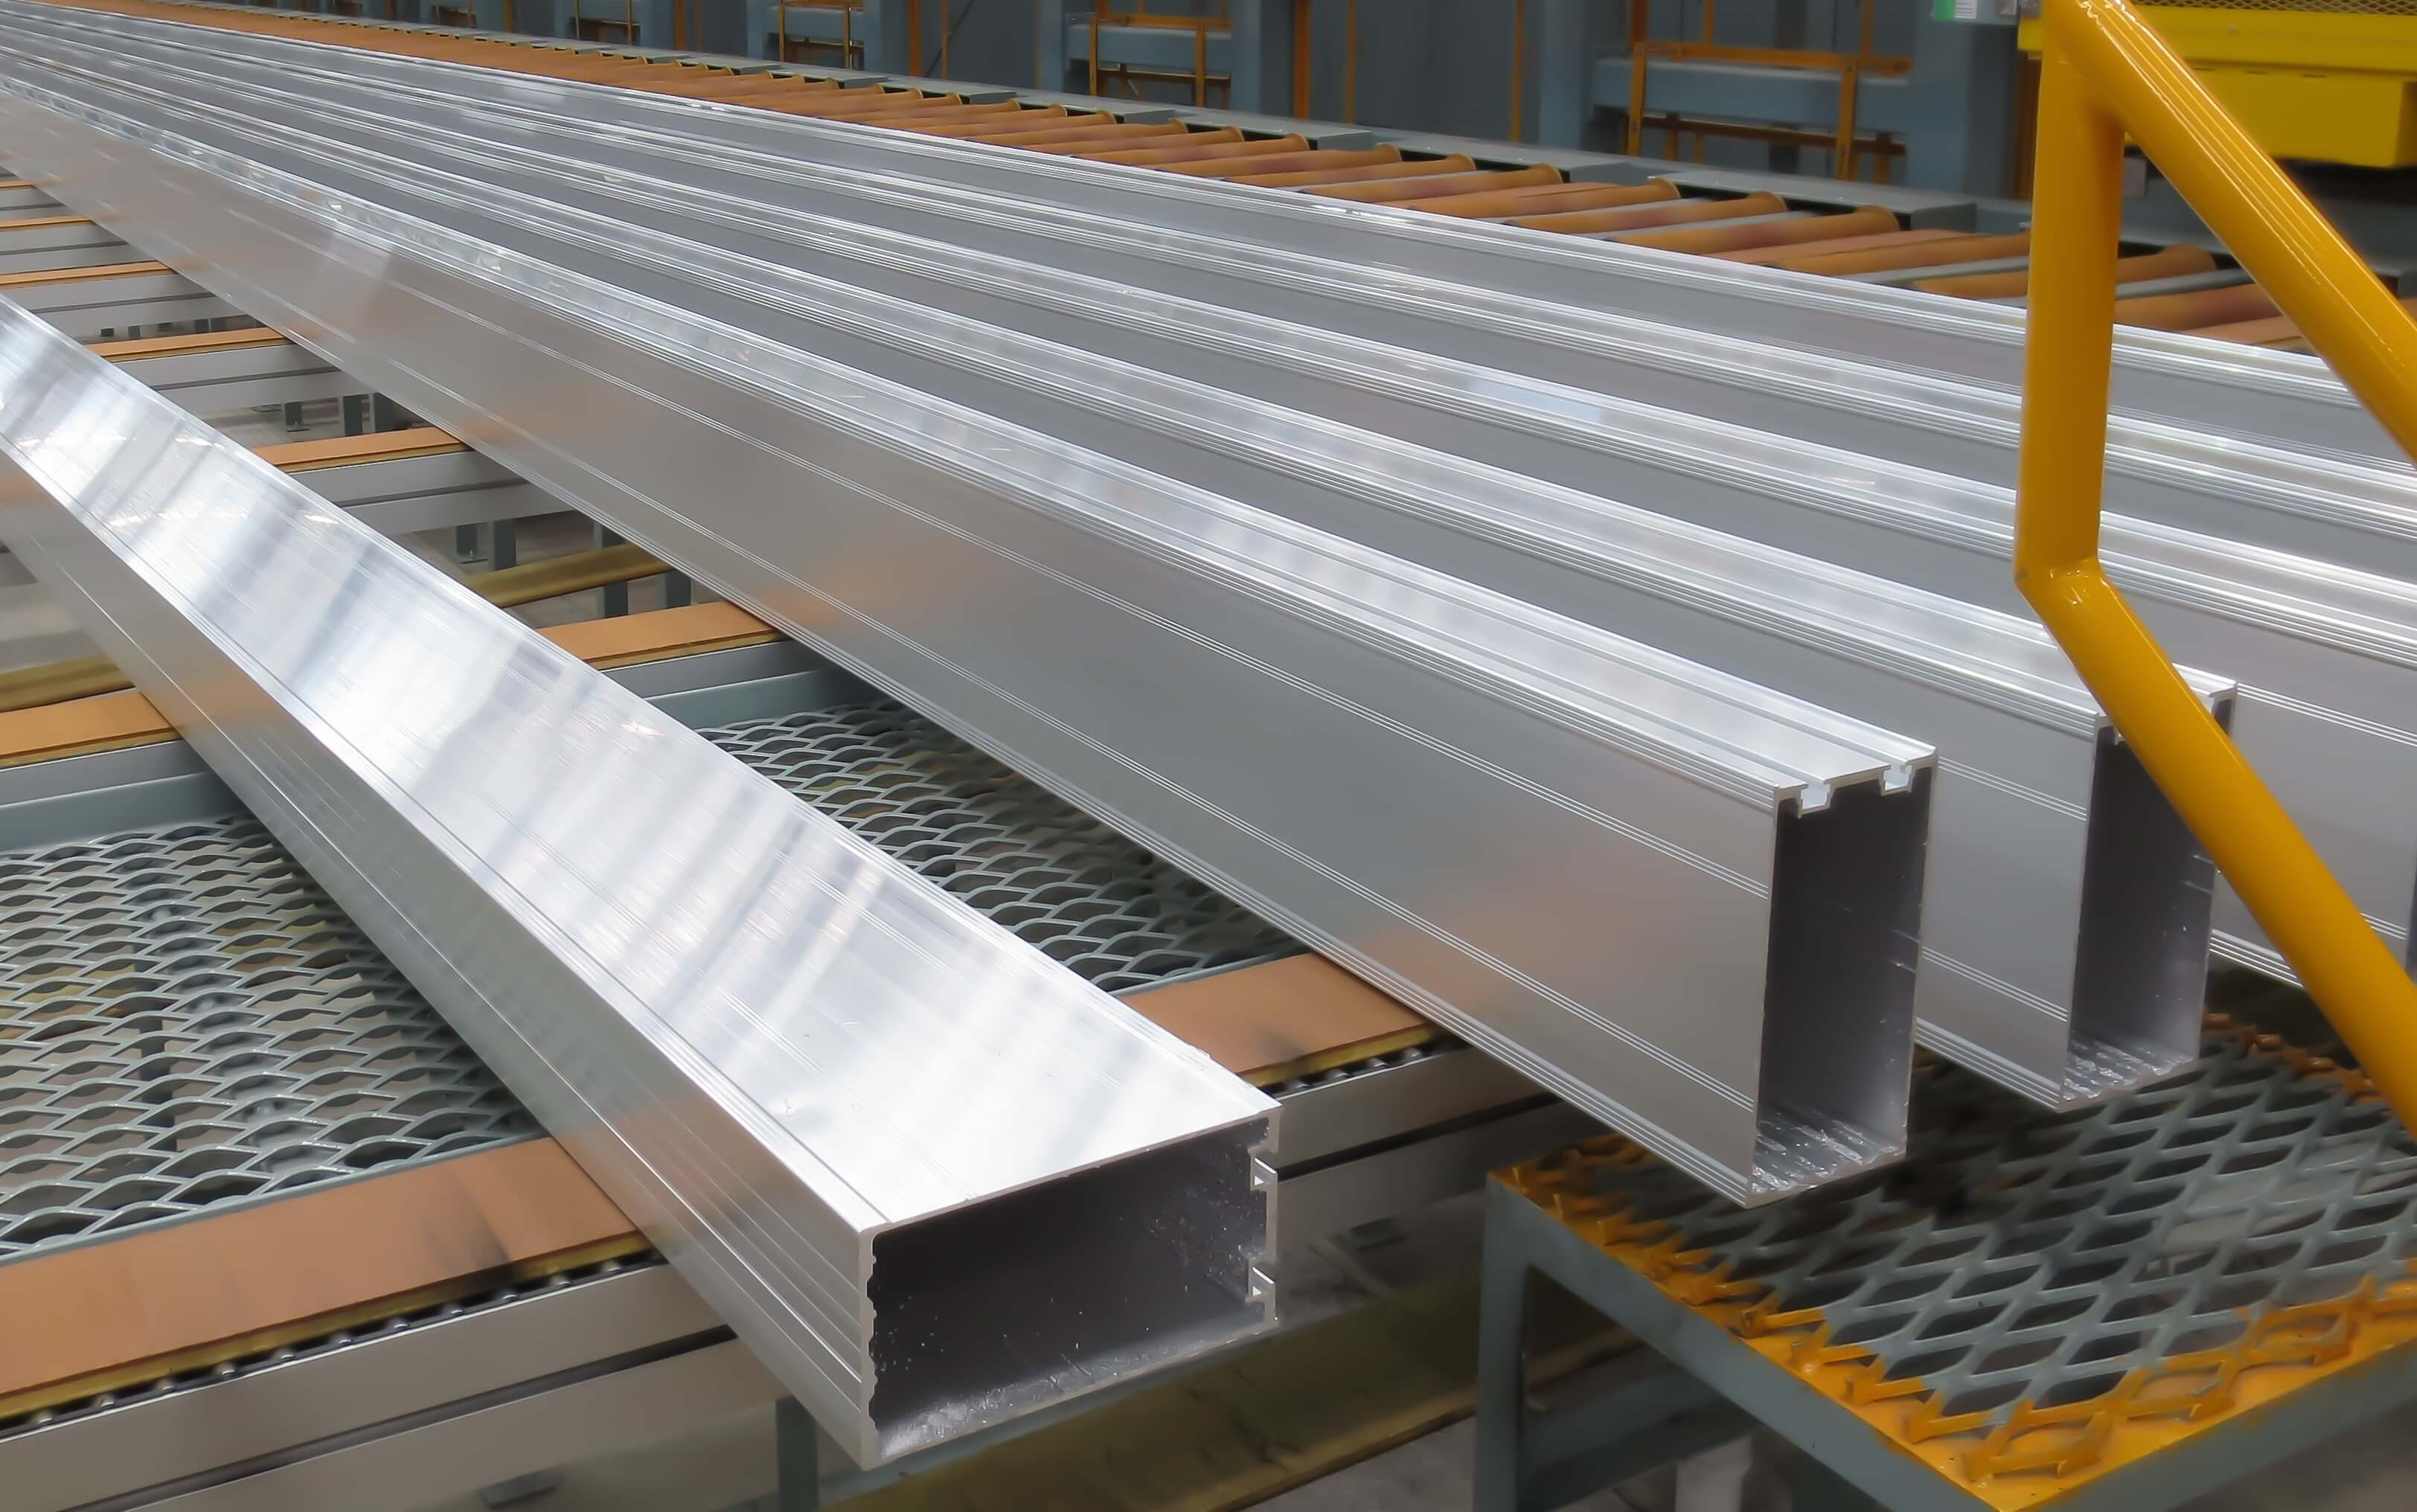 Aluminum lines on a conveyor belt in a factory.